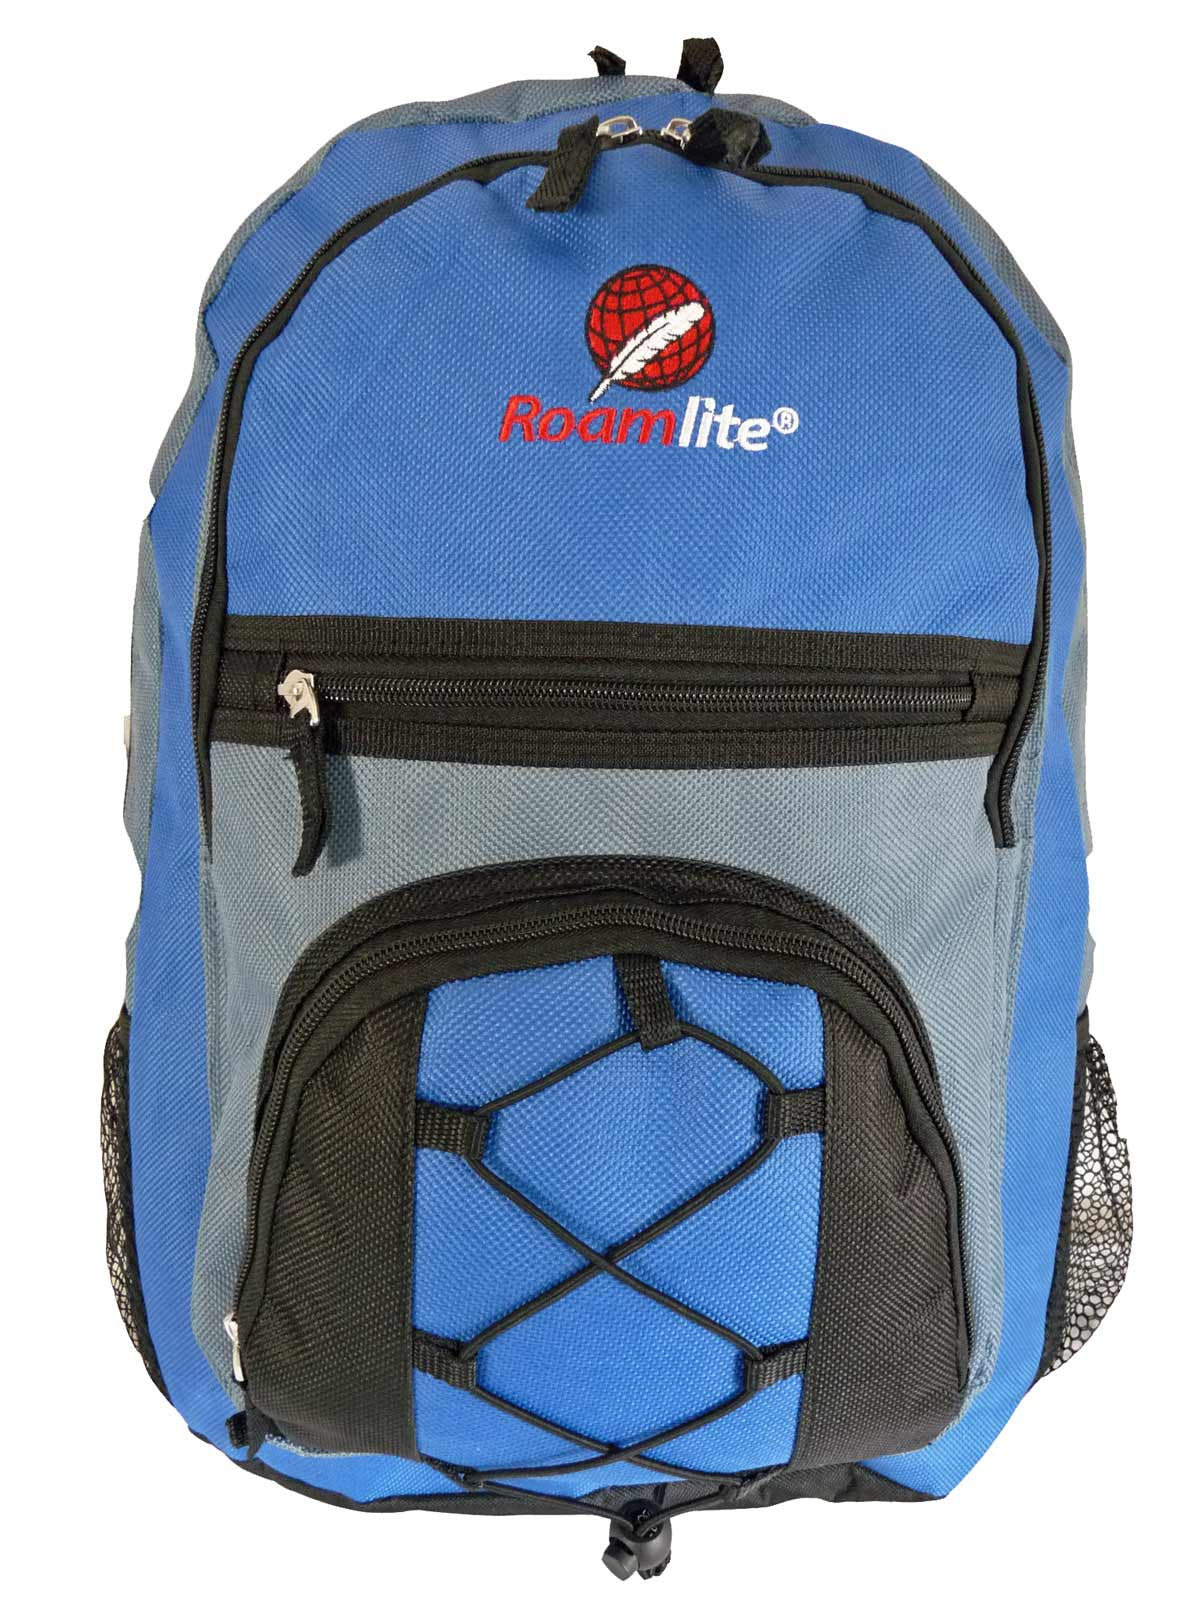 Kids School Bags RL37M Light Blue Front View